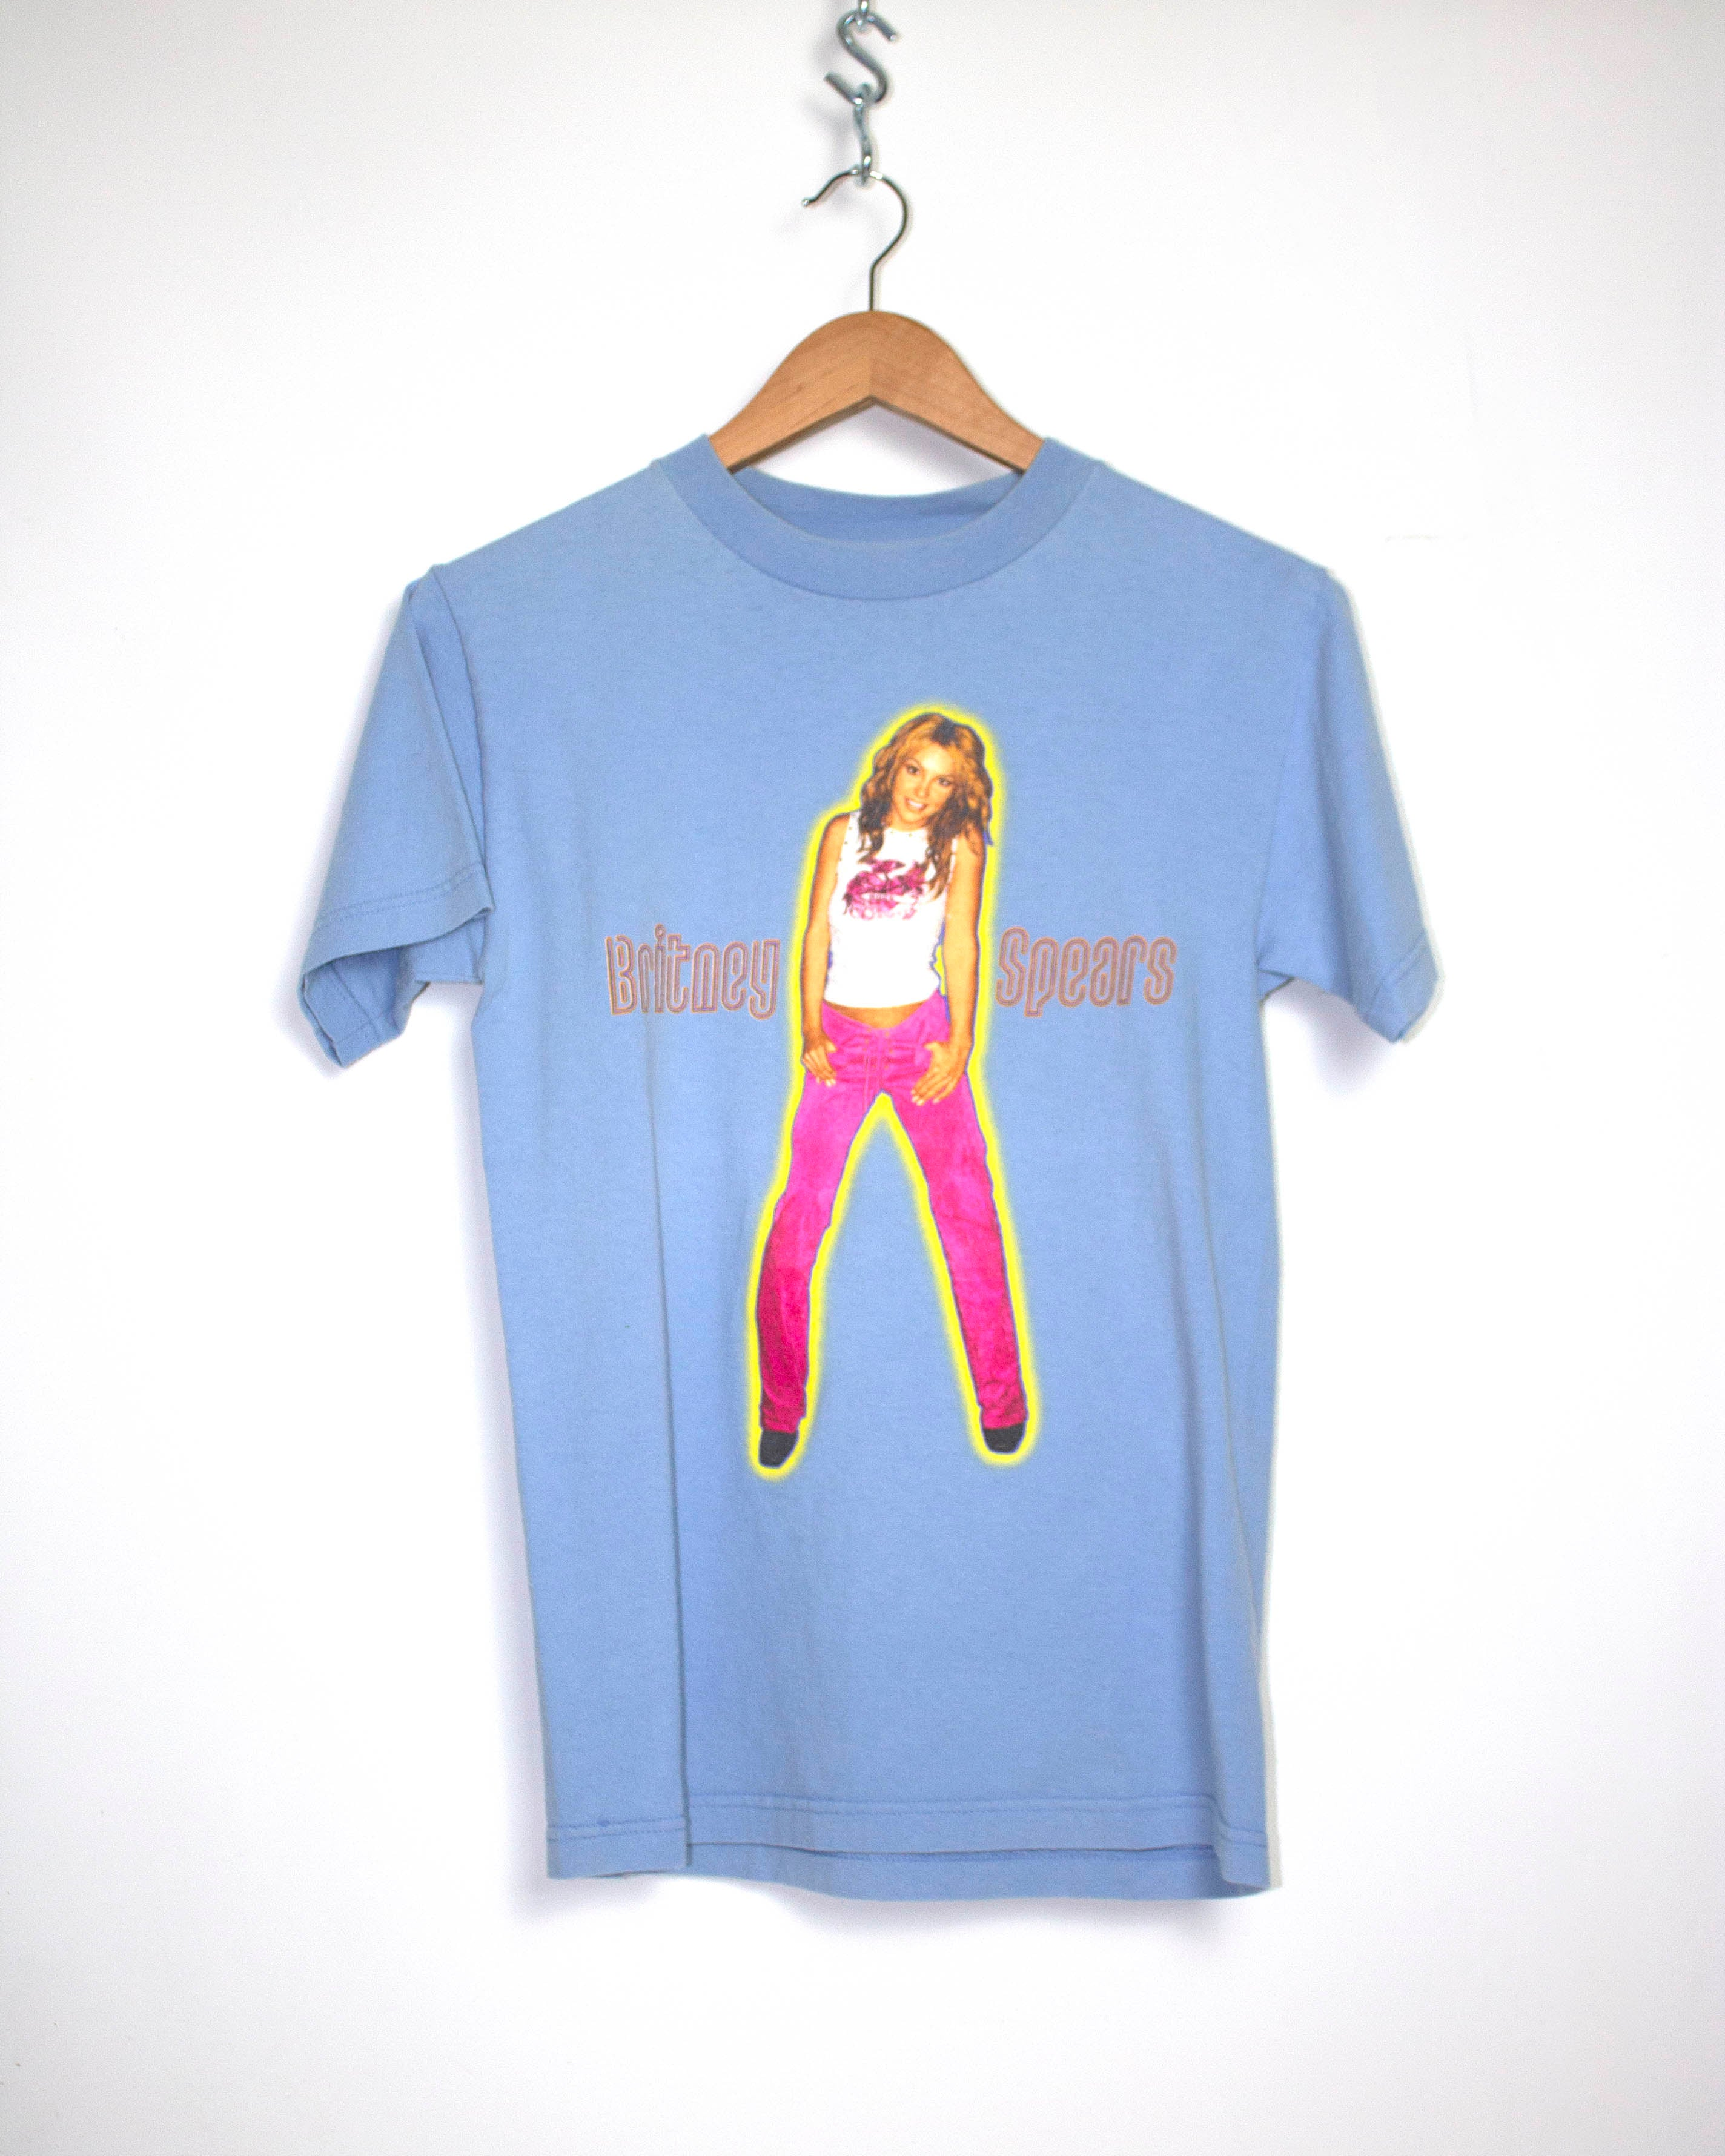 Vintage Britney Spears Oops I Did It Again Tour T-Shirt Sz S